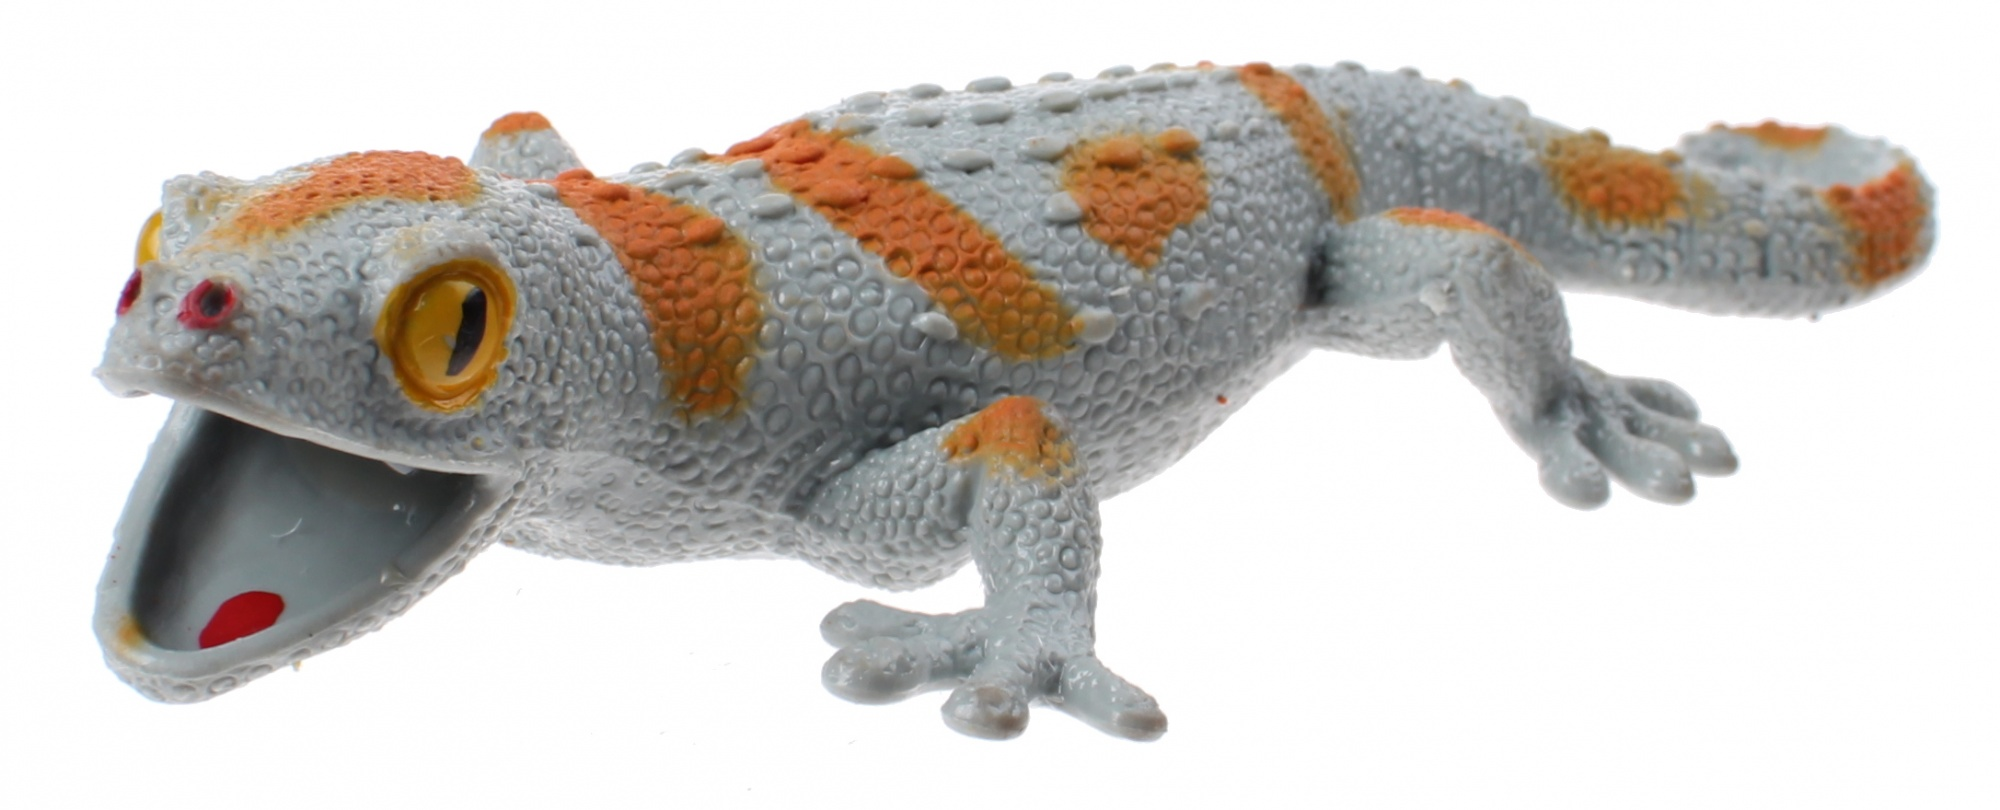 stretchy creatures lizard 20 cm gray